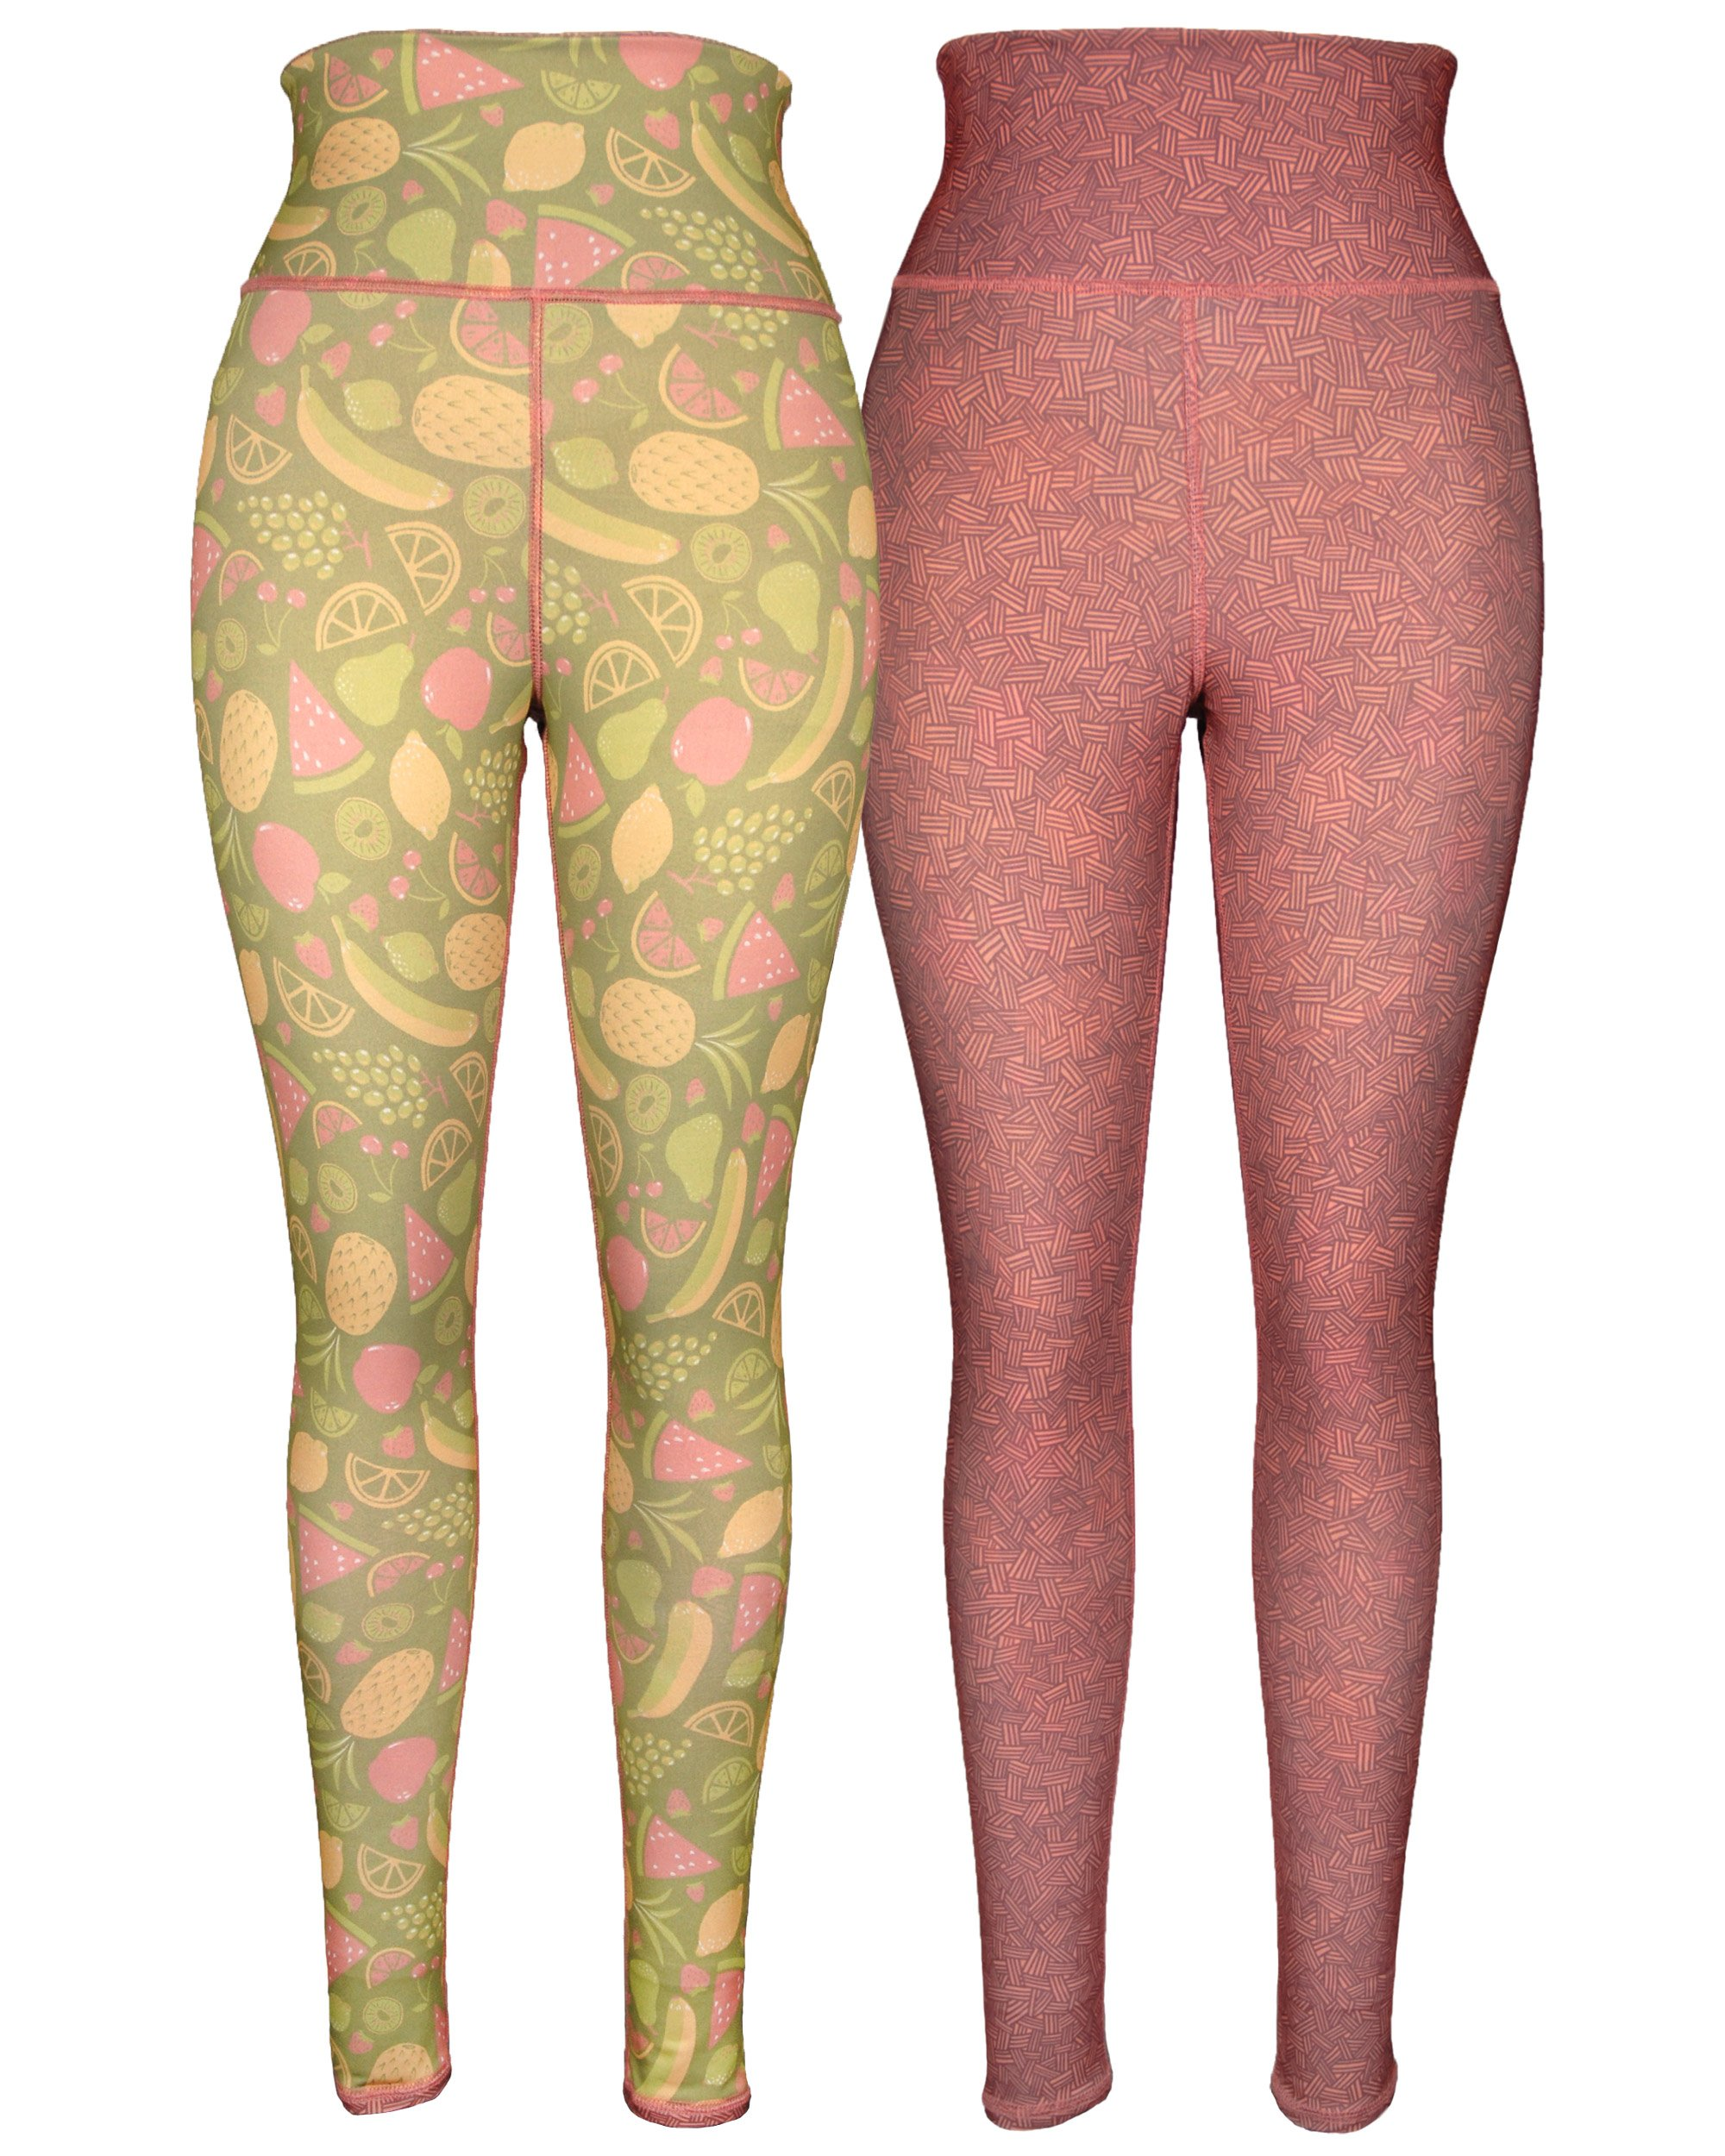 Green 3 Novelty Reversible Leggings - Womens Recycled Leggings, Made in The USA (Fruity & Crosshatch, Small/Medium)